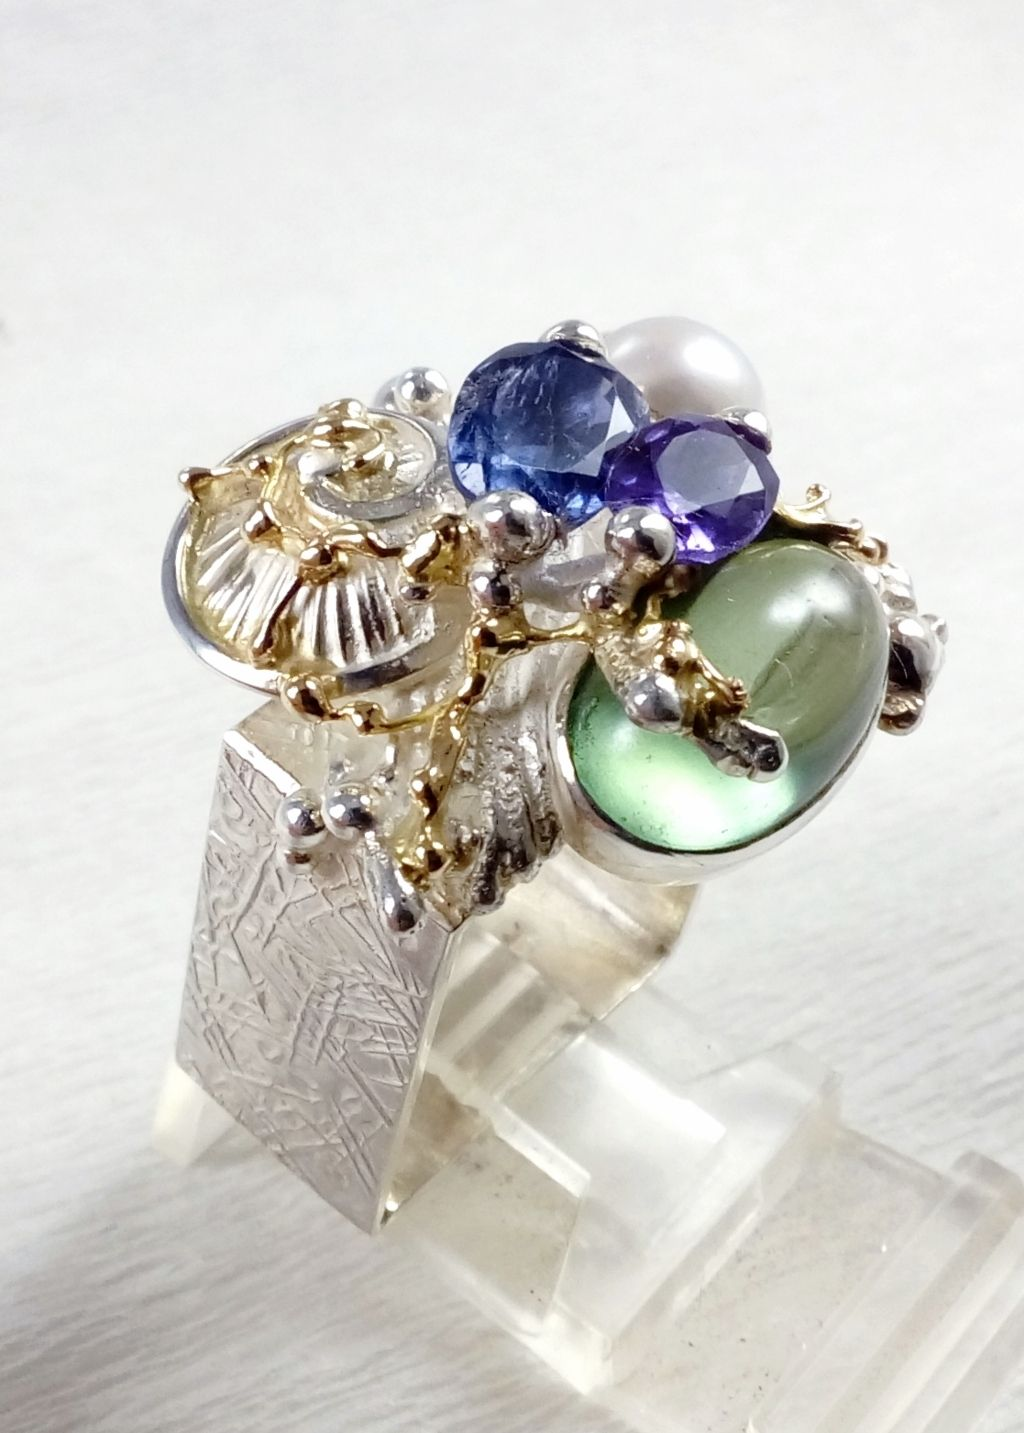 gregory pyra piro, square ring 4821, sterling silver, 14 karat gold, fluorite, amethyst, iolite, pearl, one of a kind, original handcrafted